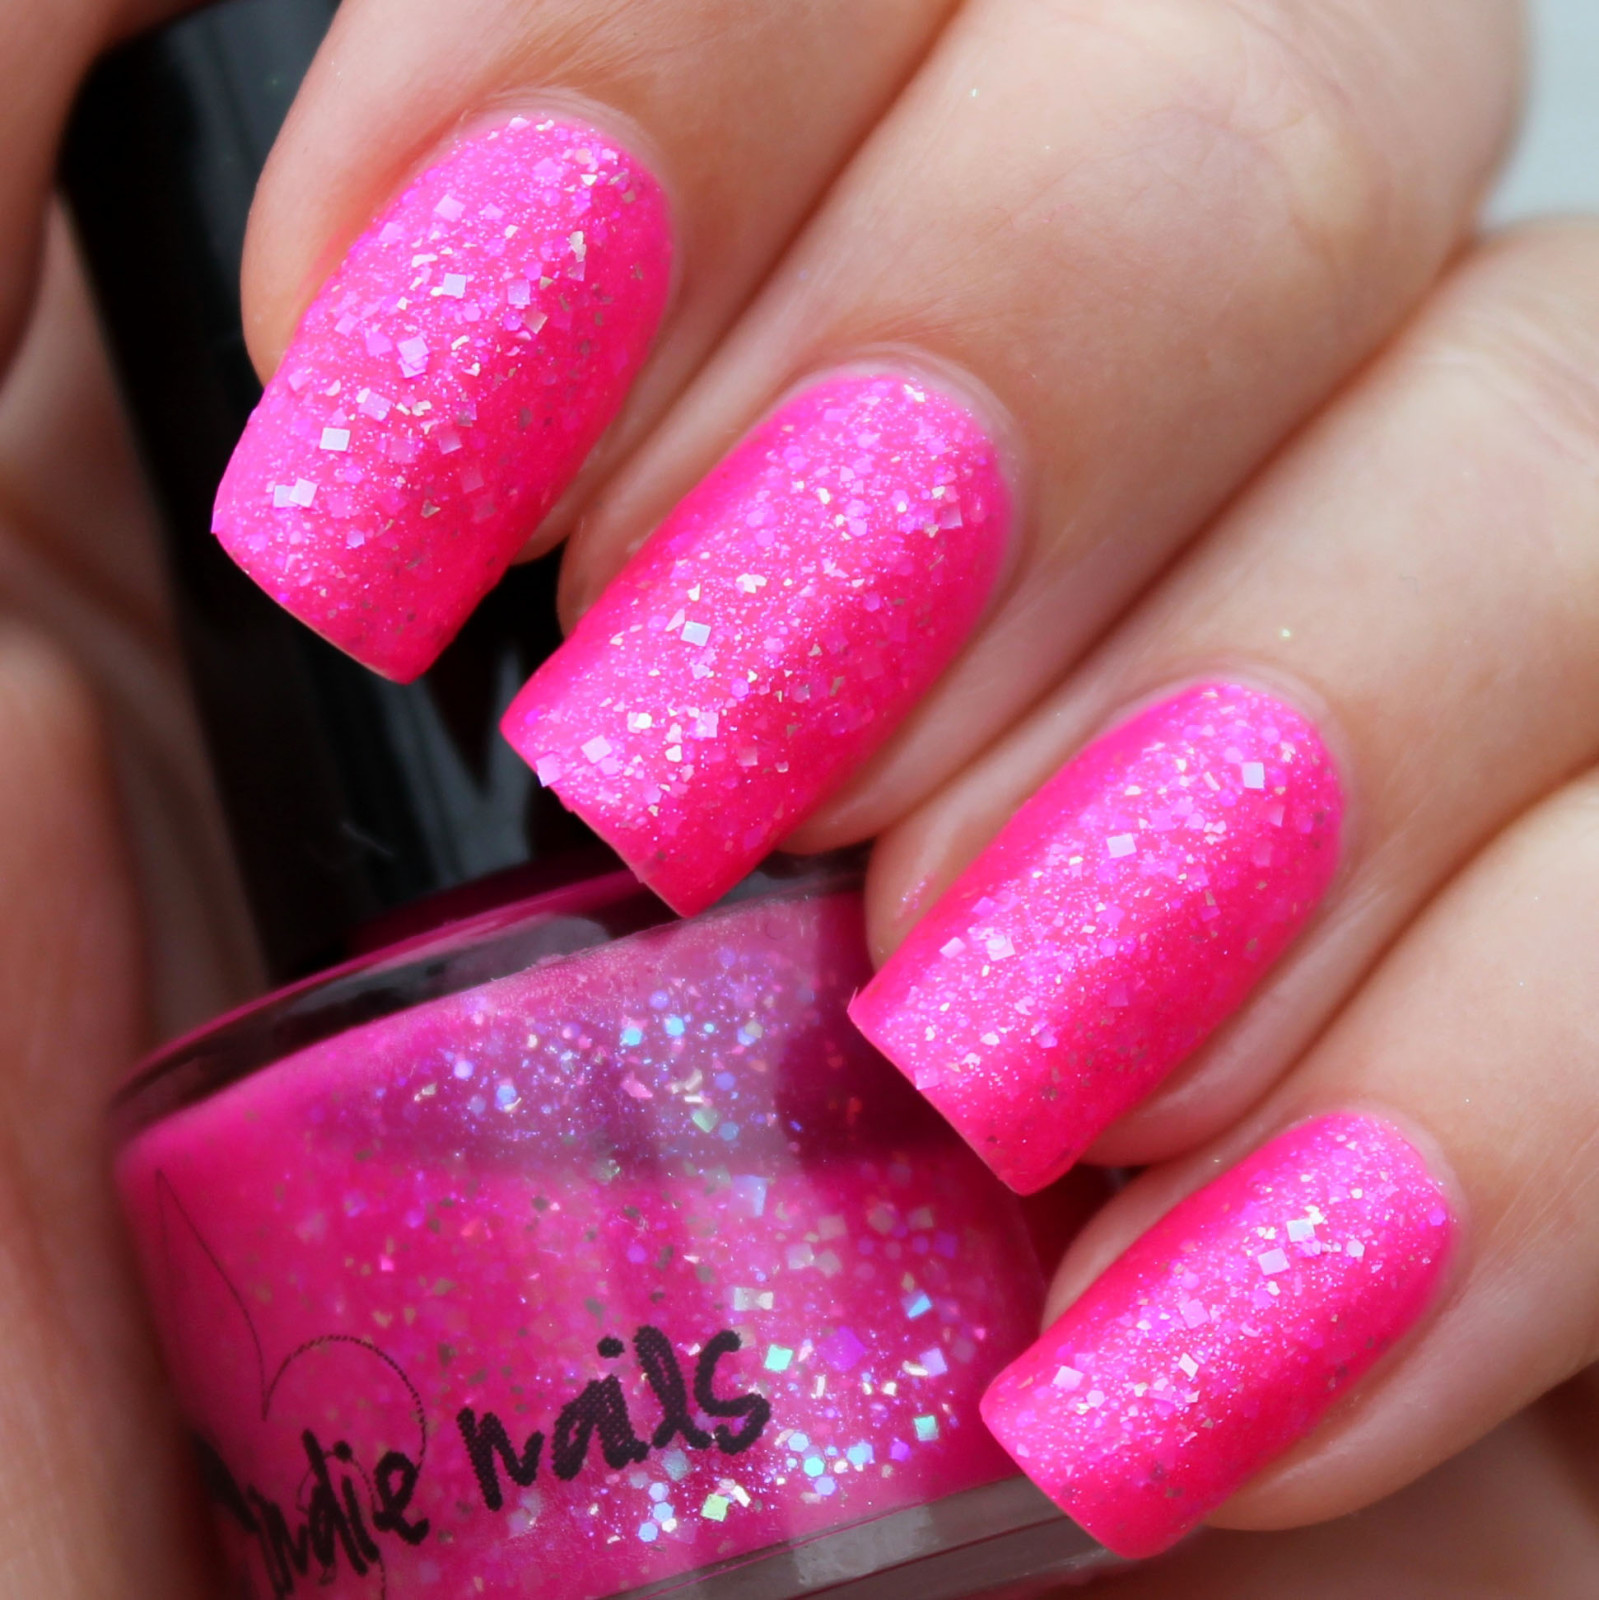 Hot Pink And Black Bedroom Punk Girly: +88 Hot Pink And Black Acrylic Nails